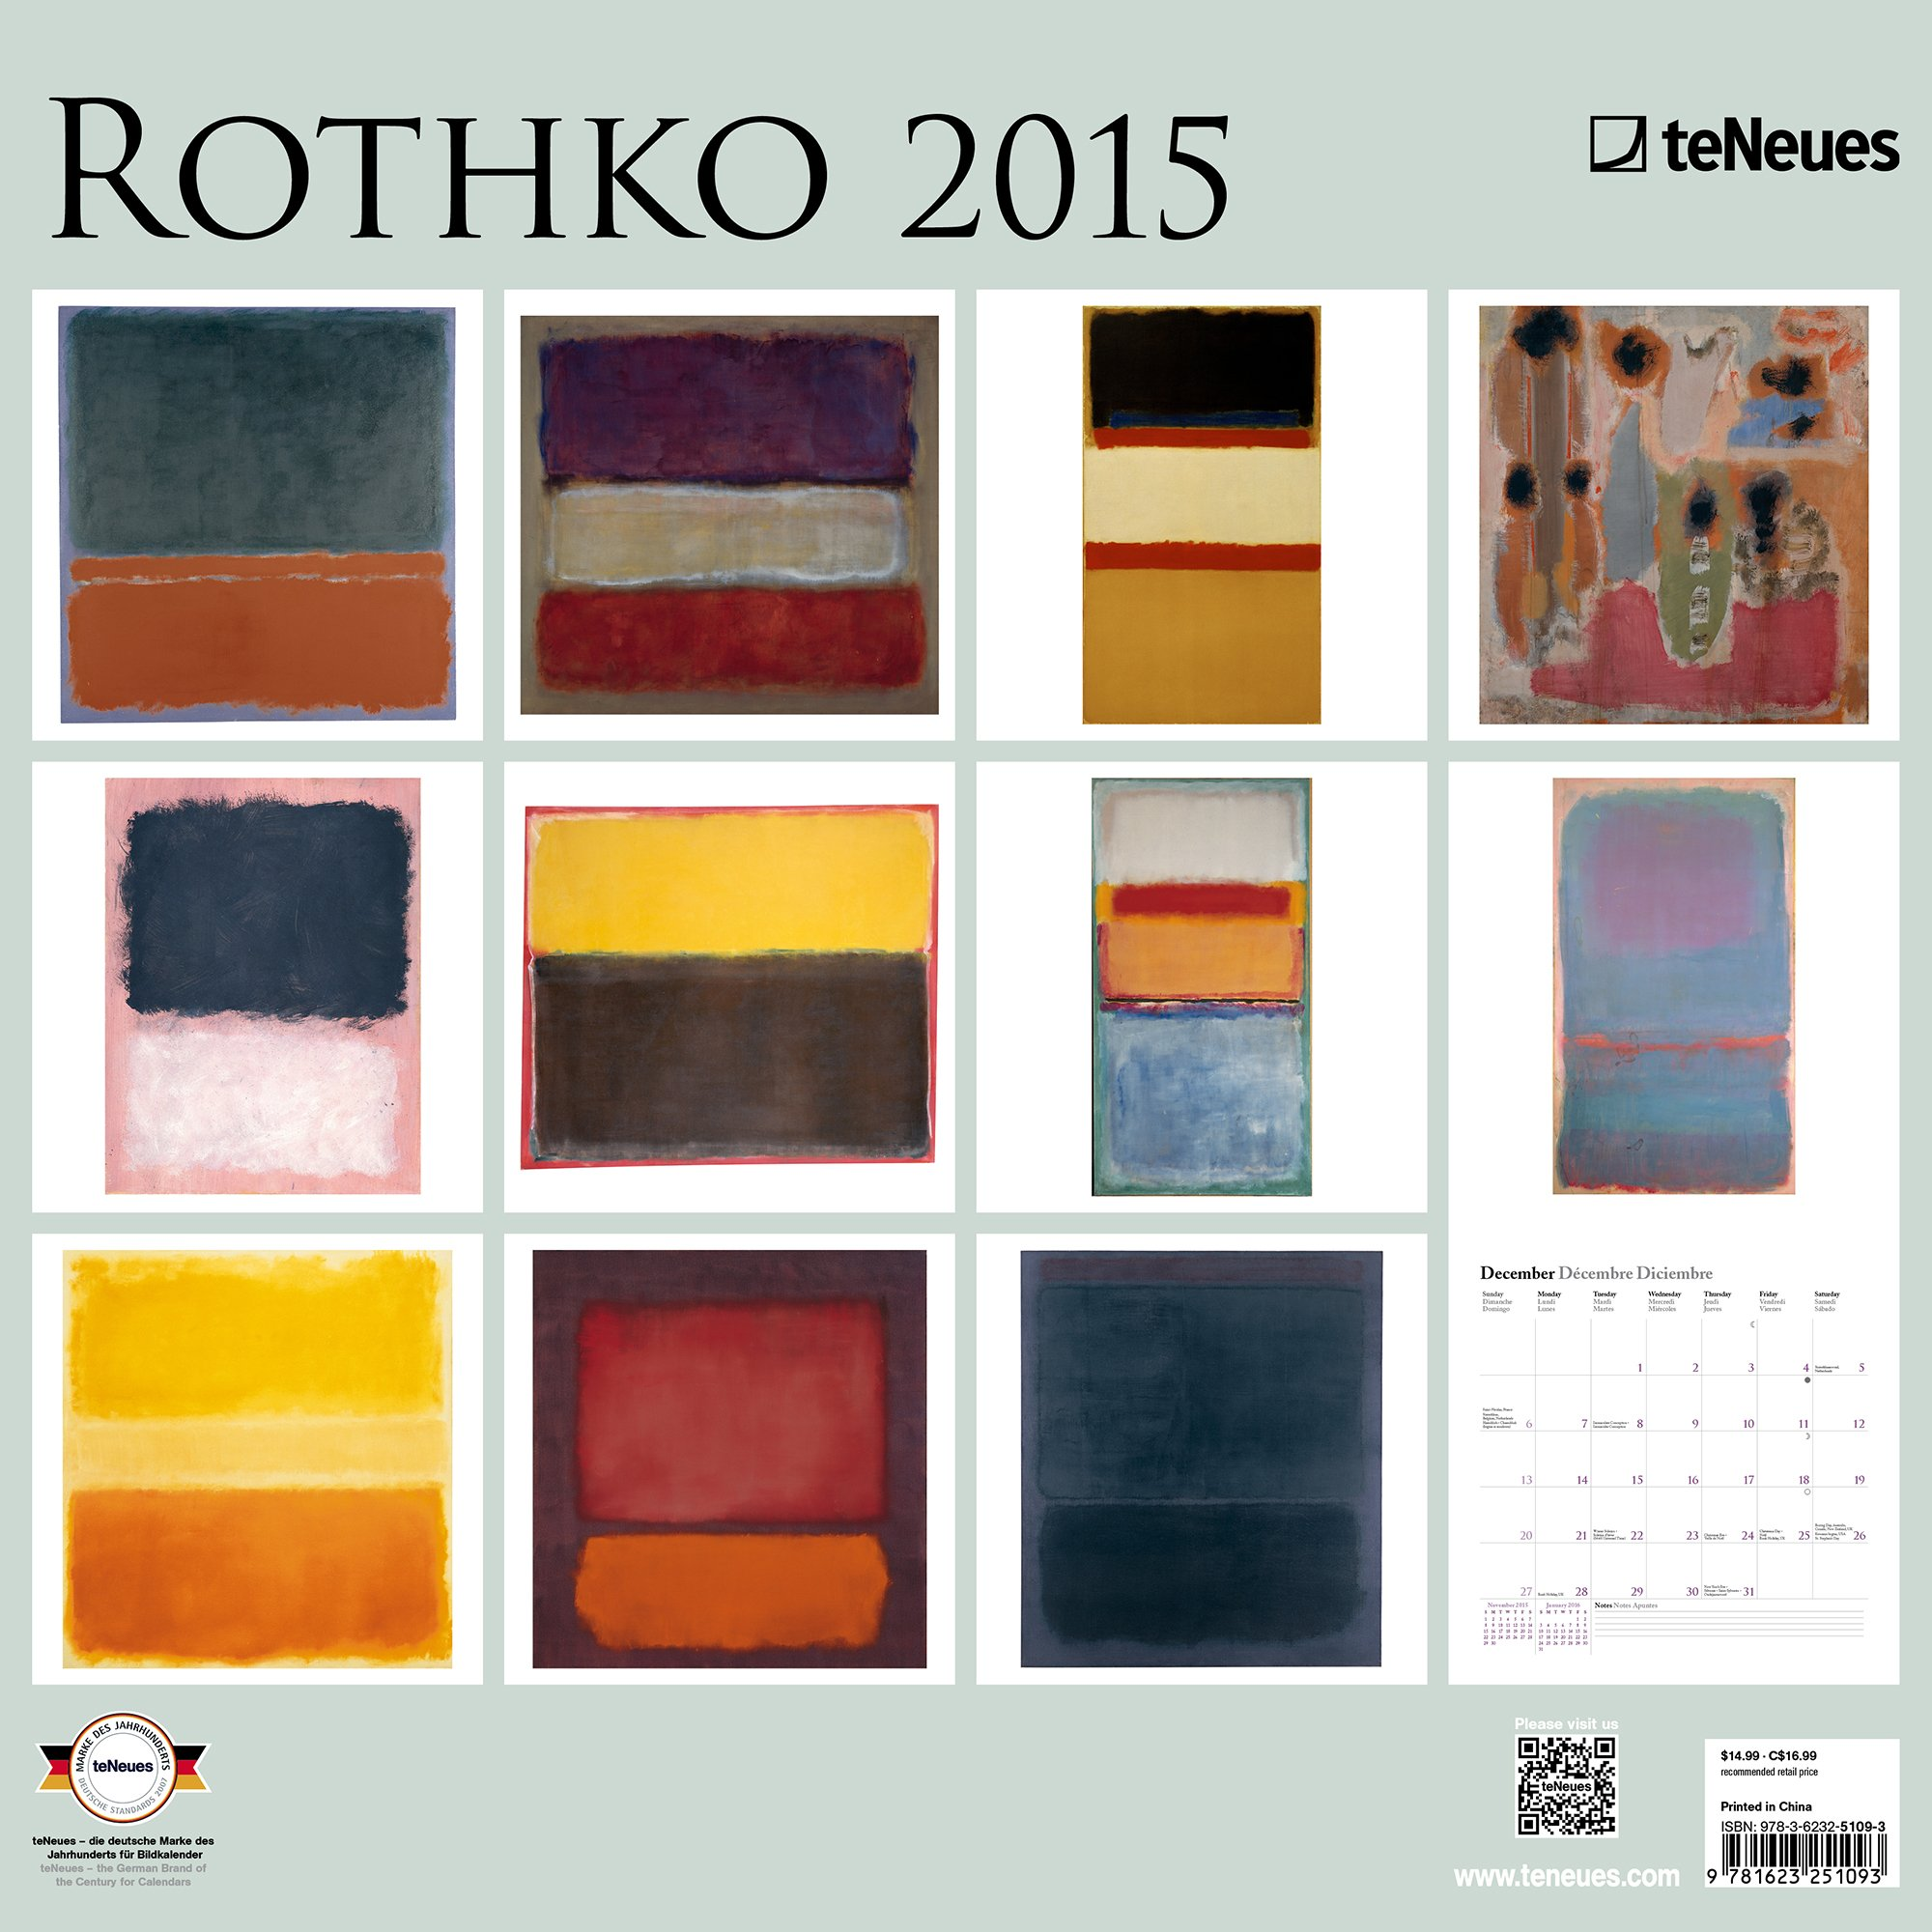 rothko 2015 calendar perfect for framing art for gallery wall